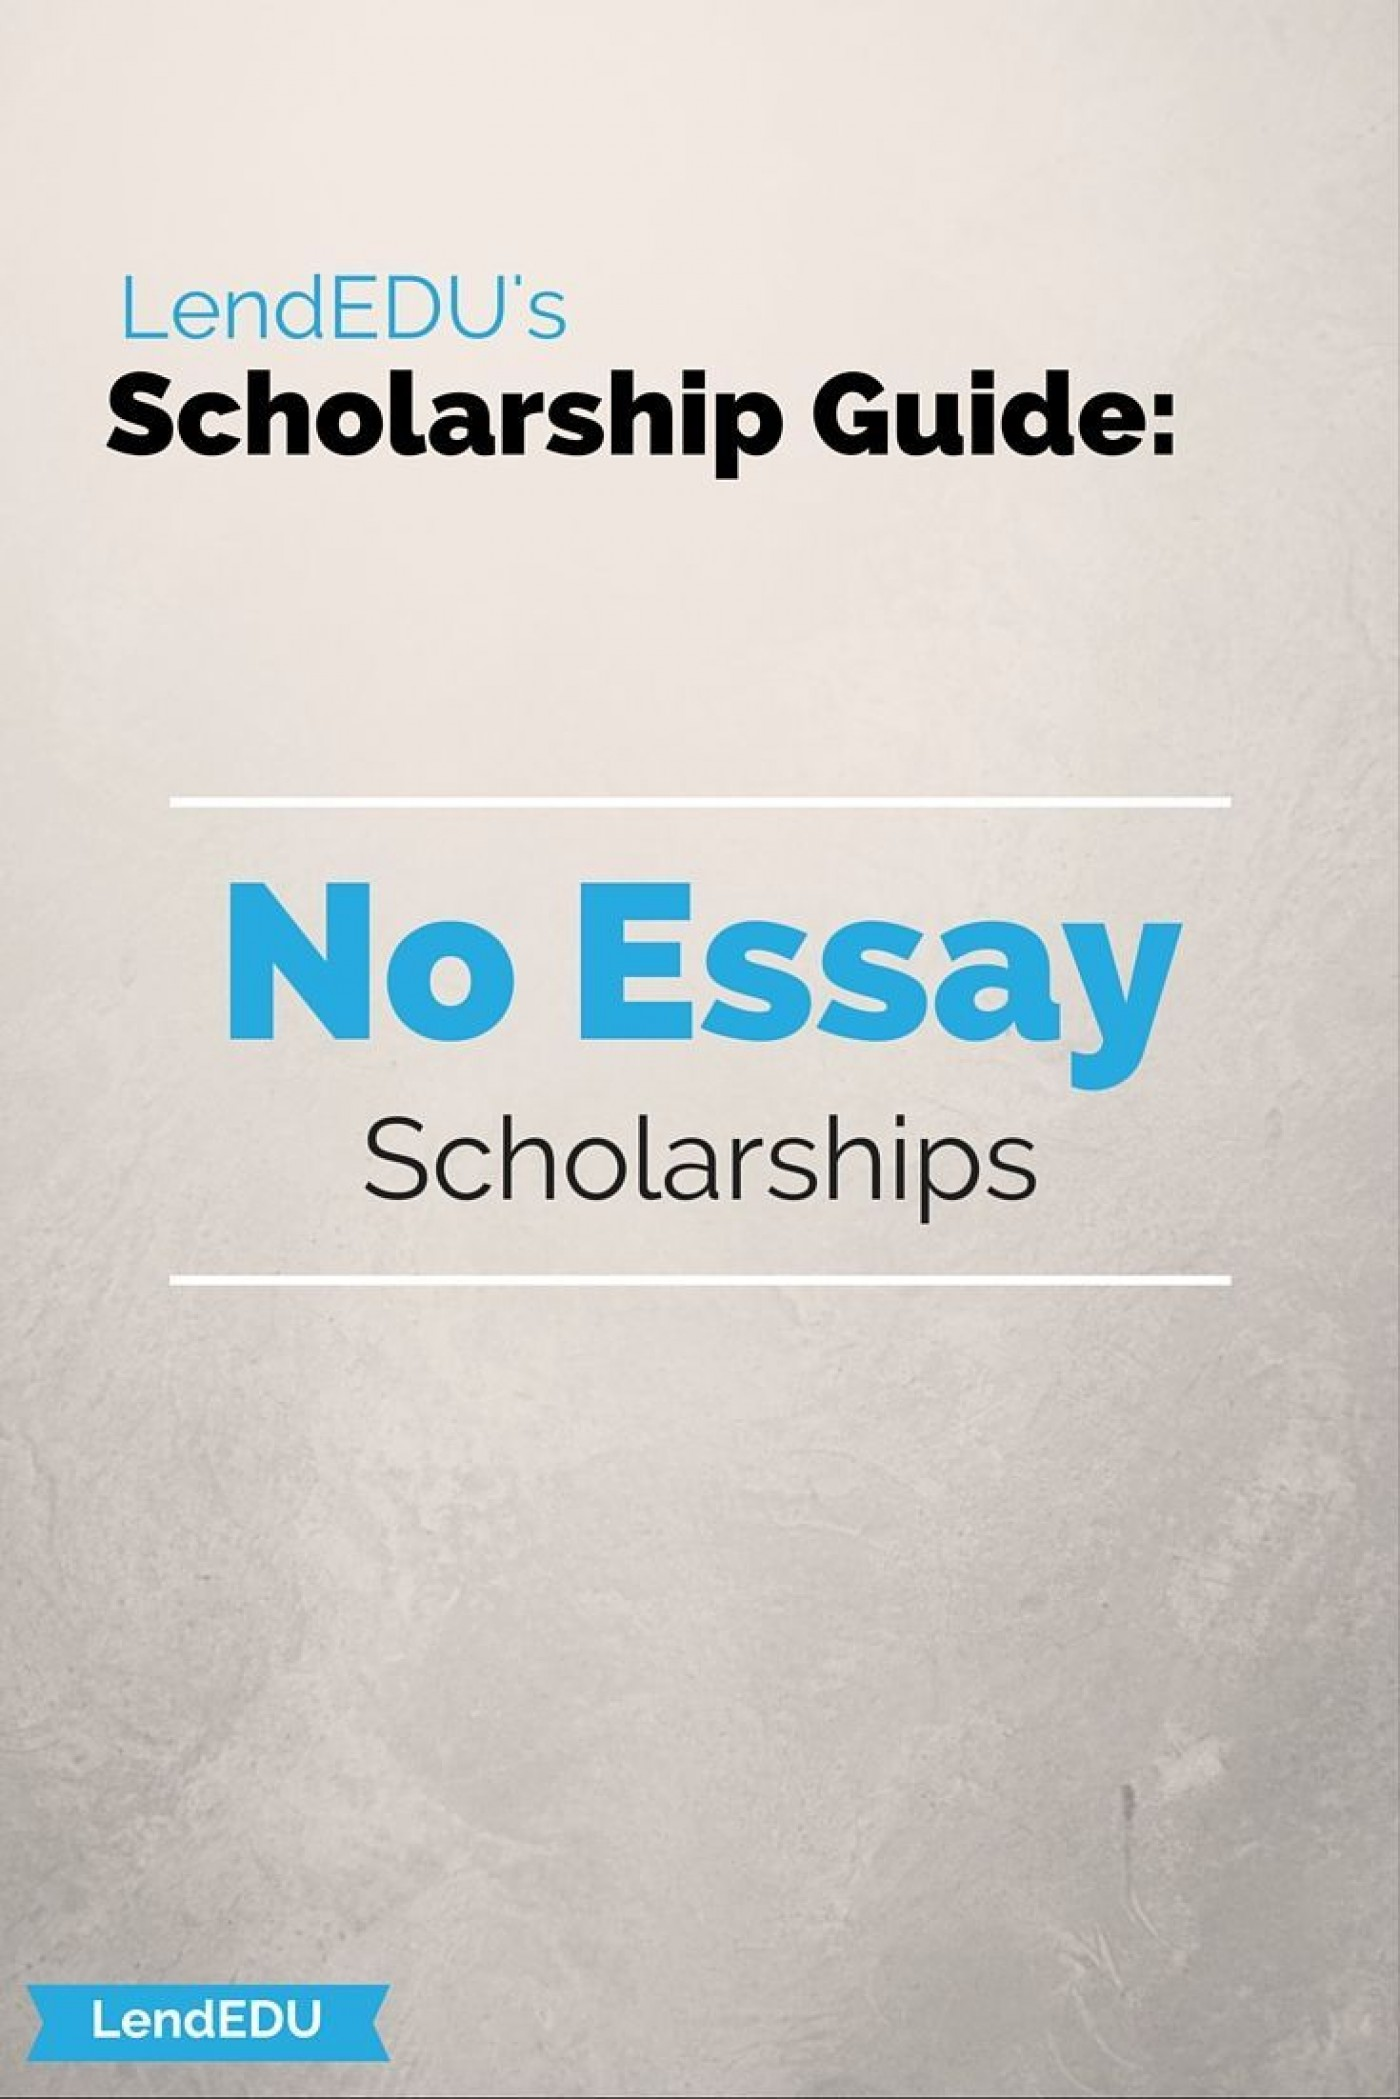 016 Essay Example No Scholarship Wondrous Scholarships For High School Freshman Seniors 2019 1400